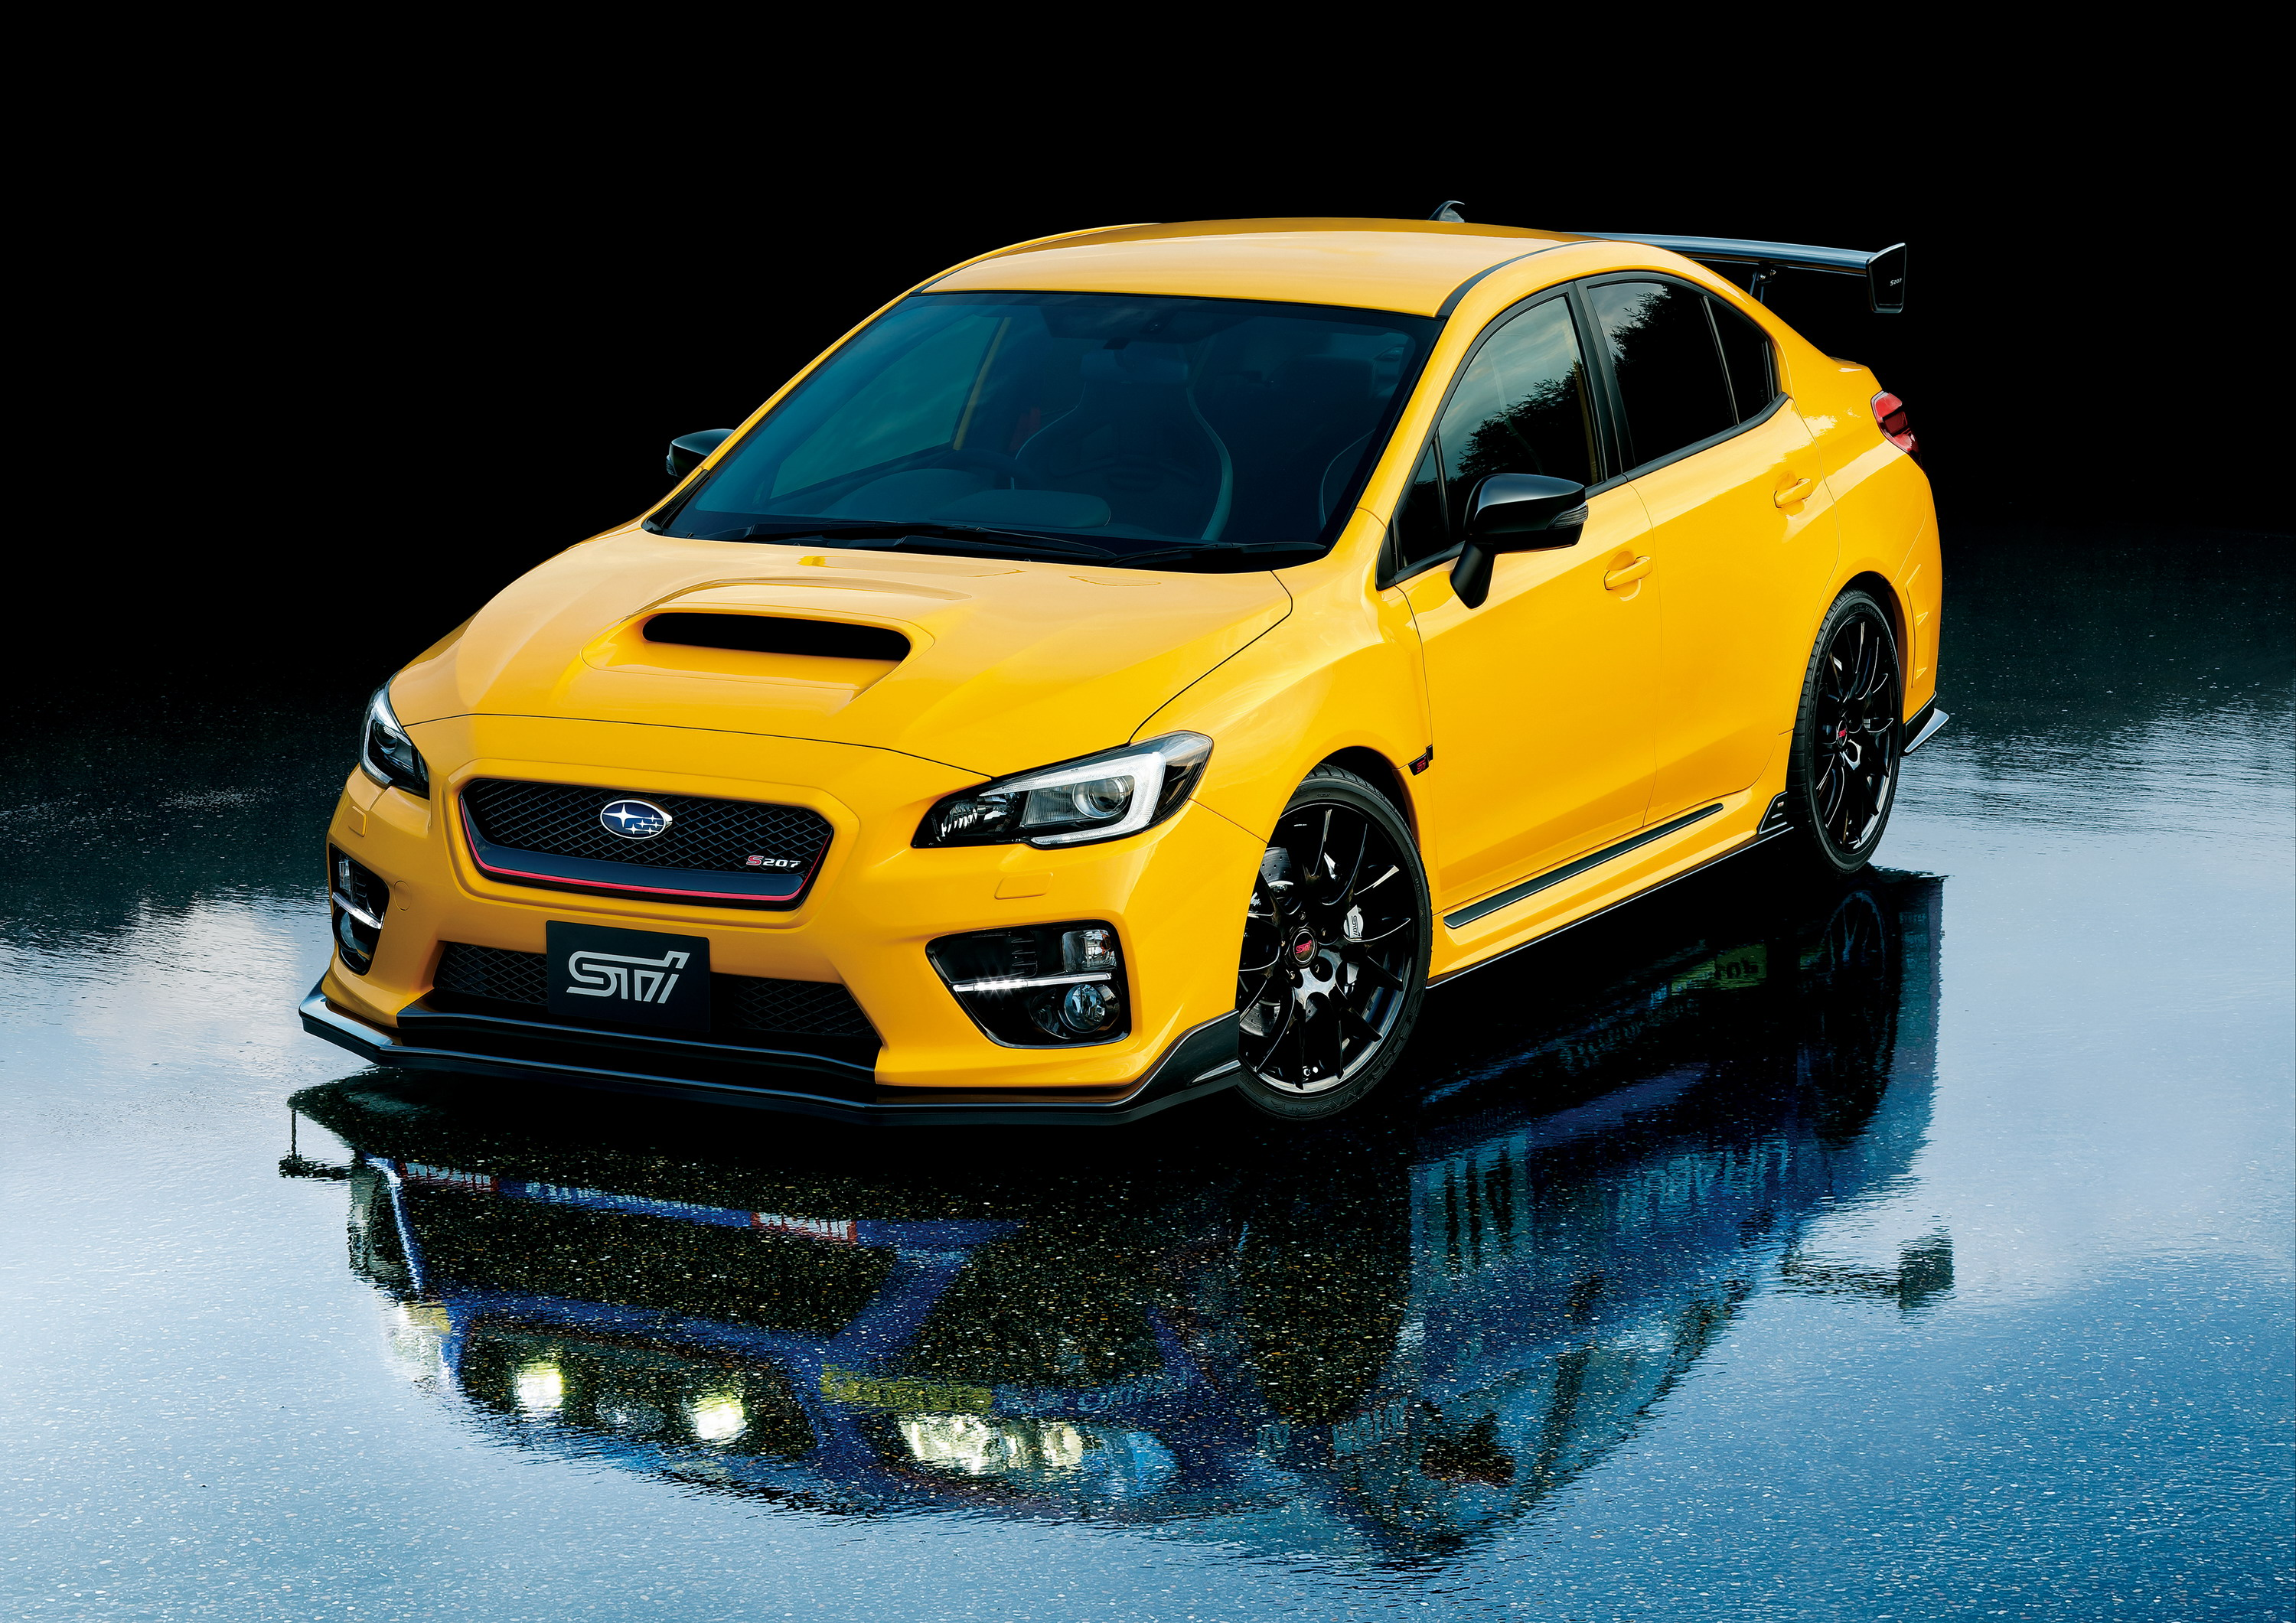 2016 Subaru Wrx Sti S207 Limited Edition Top Speed